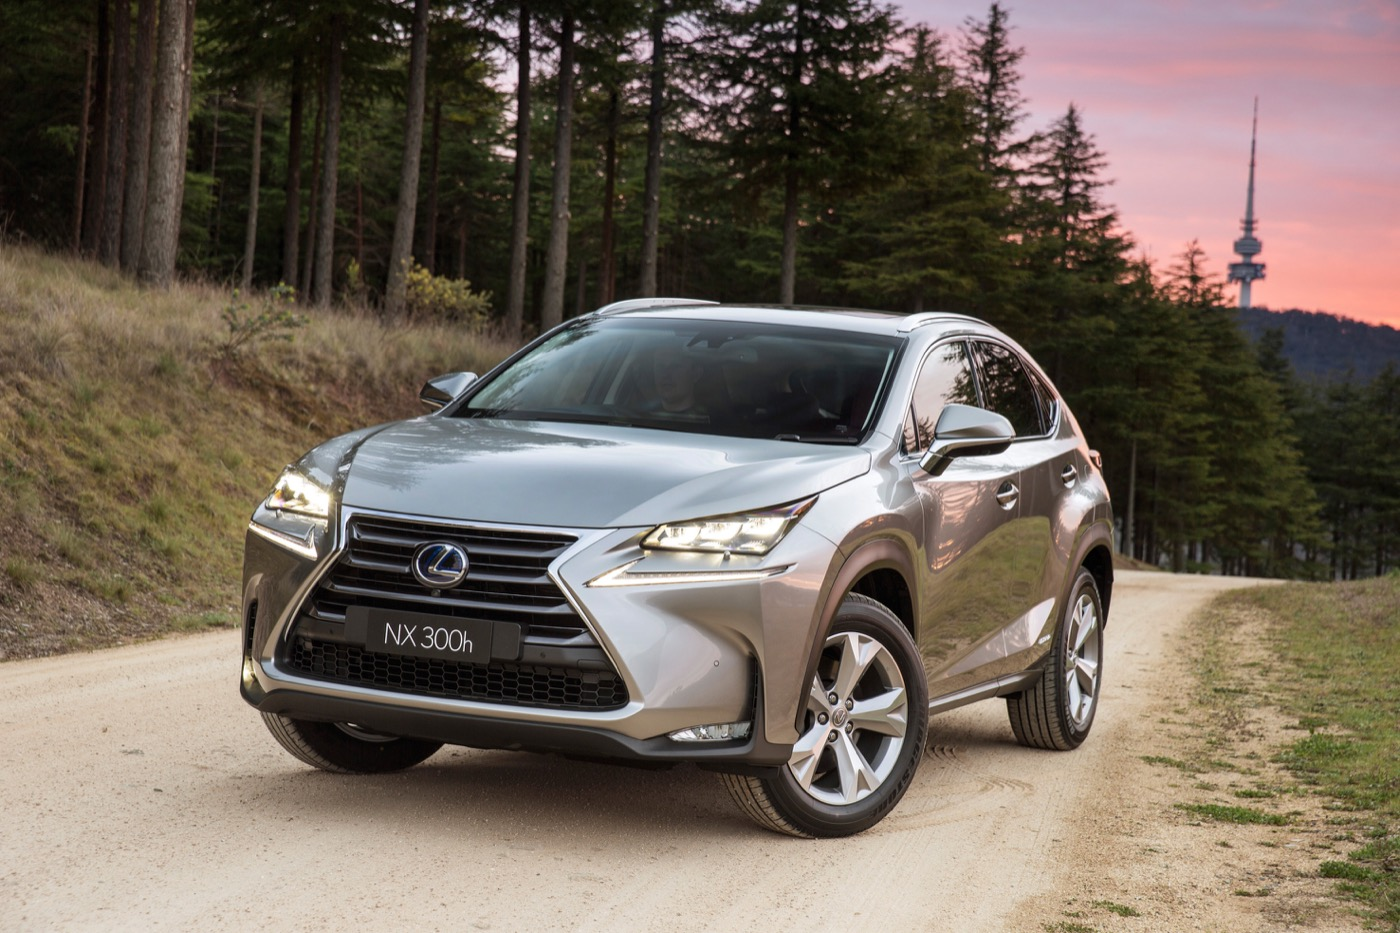 review lexus nx 300h review and road test. Black Bedroom Furniture Sets. Home Design Ideas